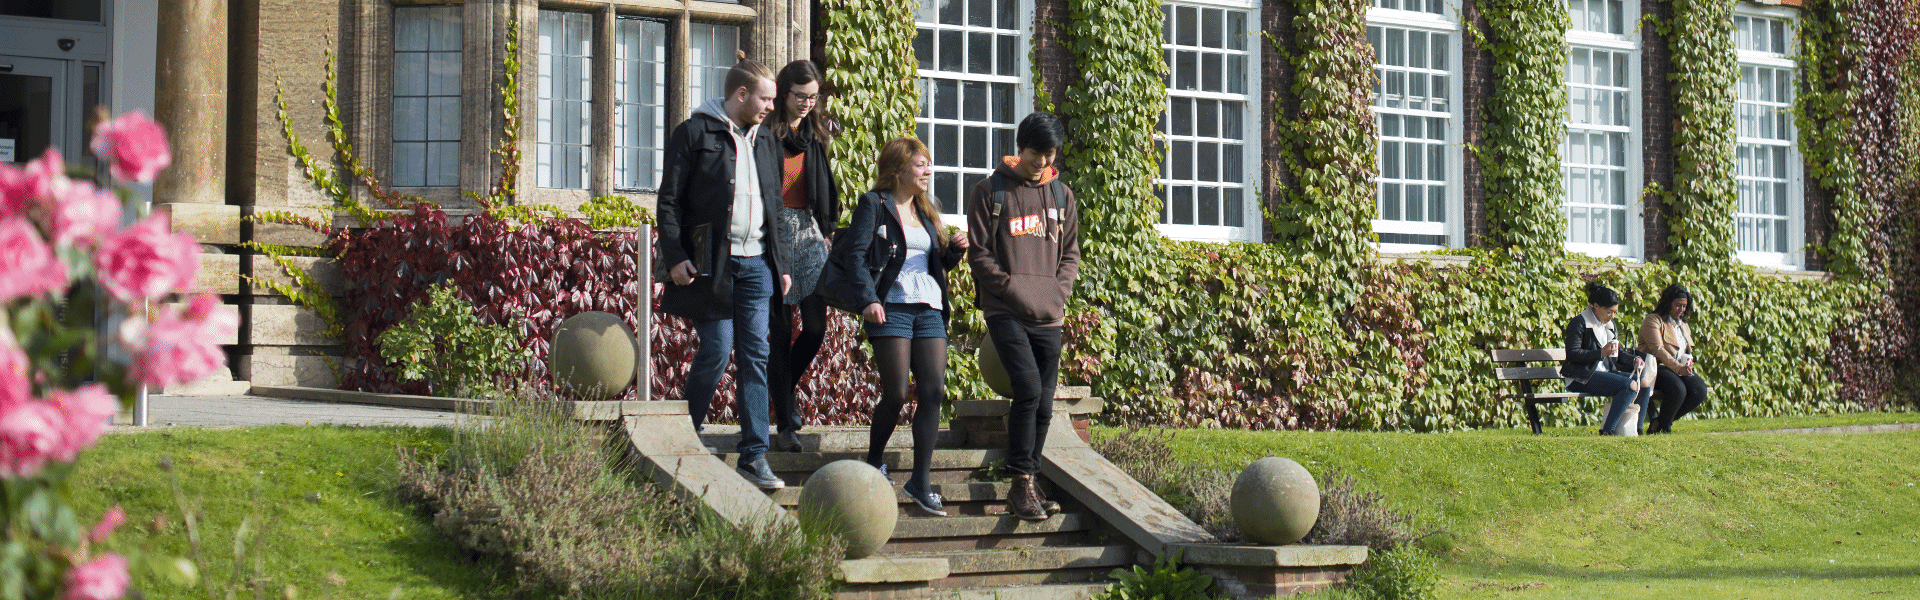 HUBS Students on steps Derwent Exterior Landscape UNI_7286